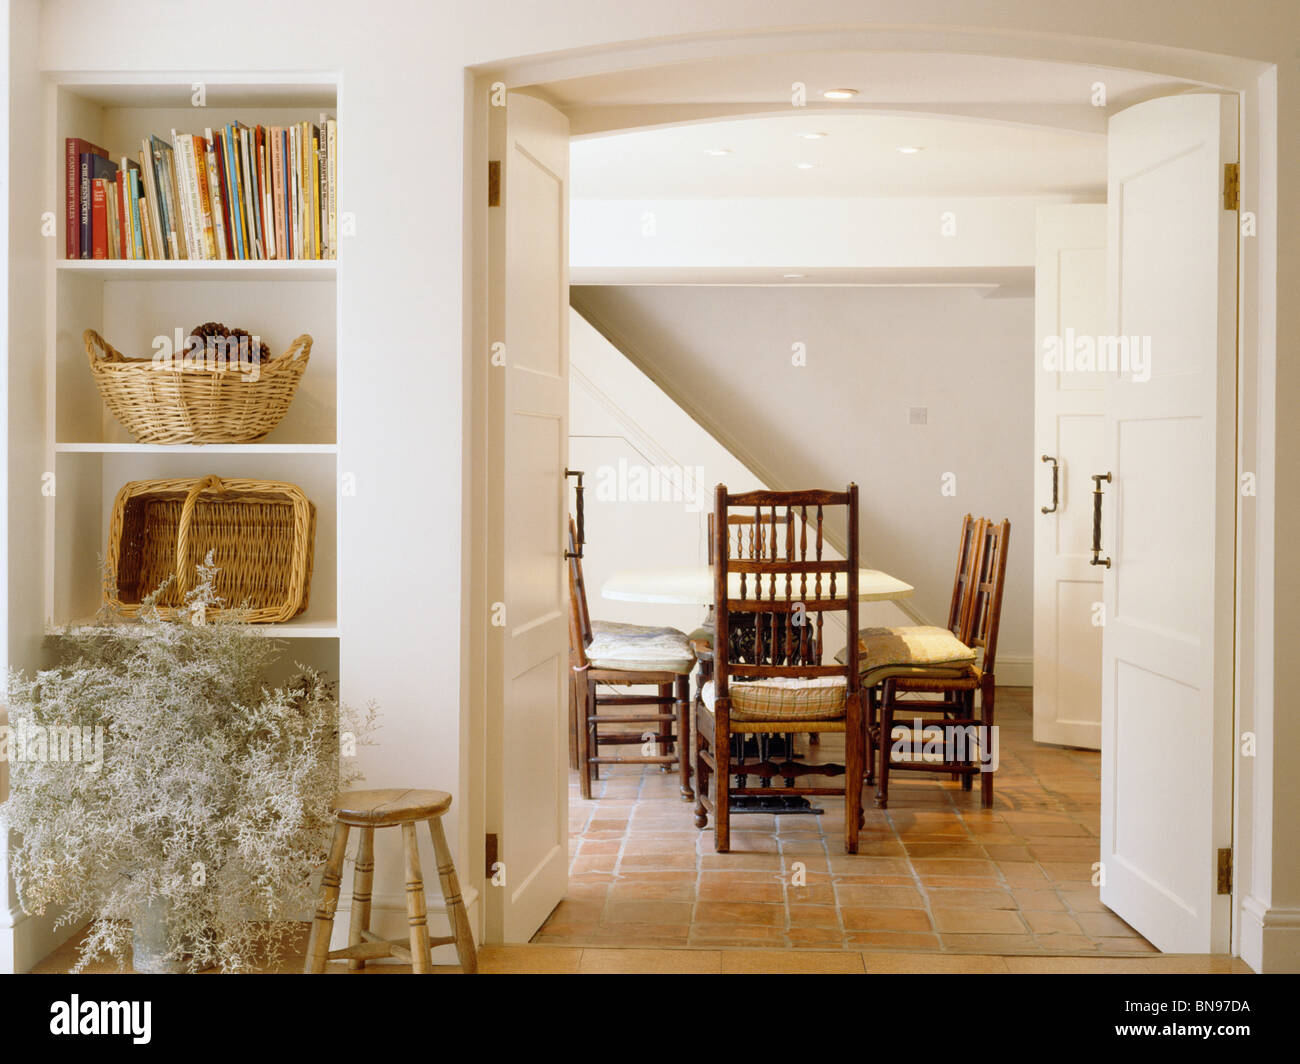 Alcove Shelves Beside Open Double Doors To Cream Country Dining Room Stock Photo Royalty Free